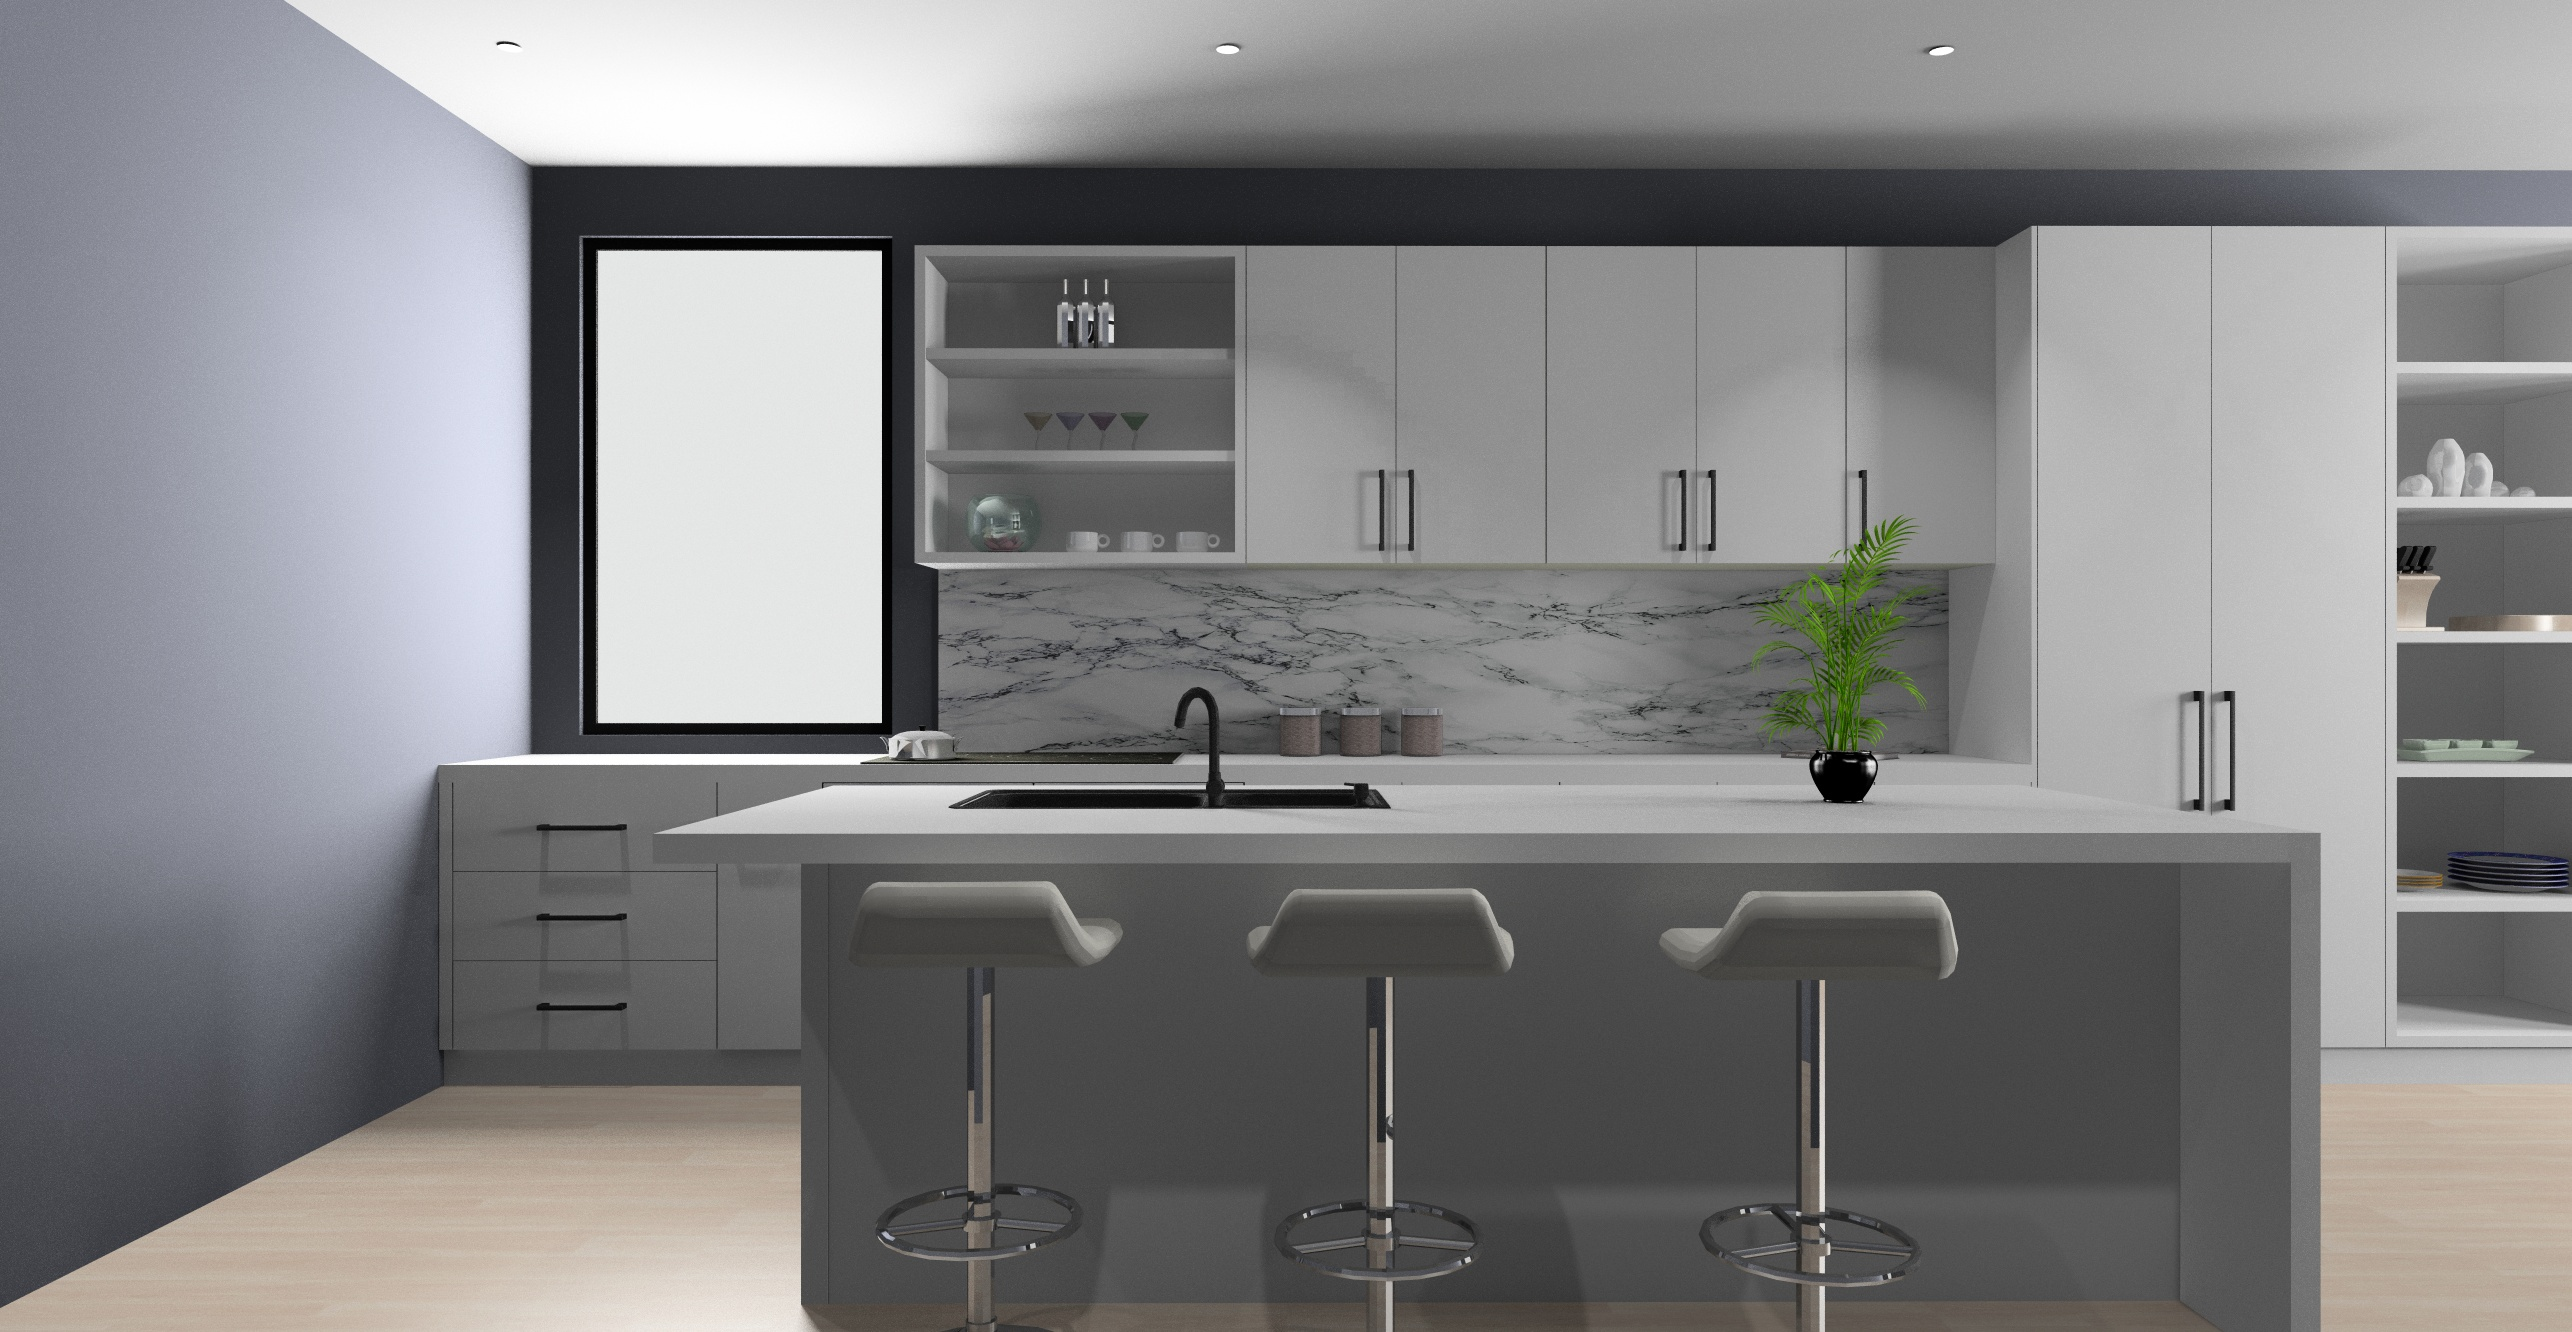 Kd Max 3d Kitchen Design Software Free Download Imeasure Kitchen Software Solutions Cabinets By Computer